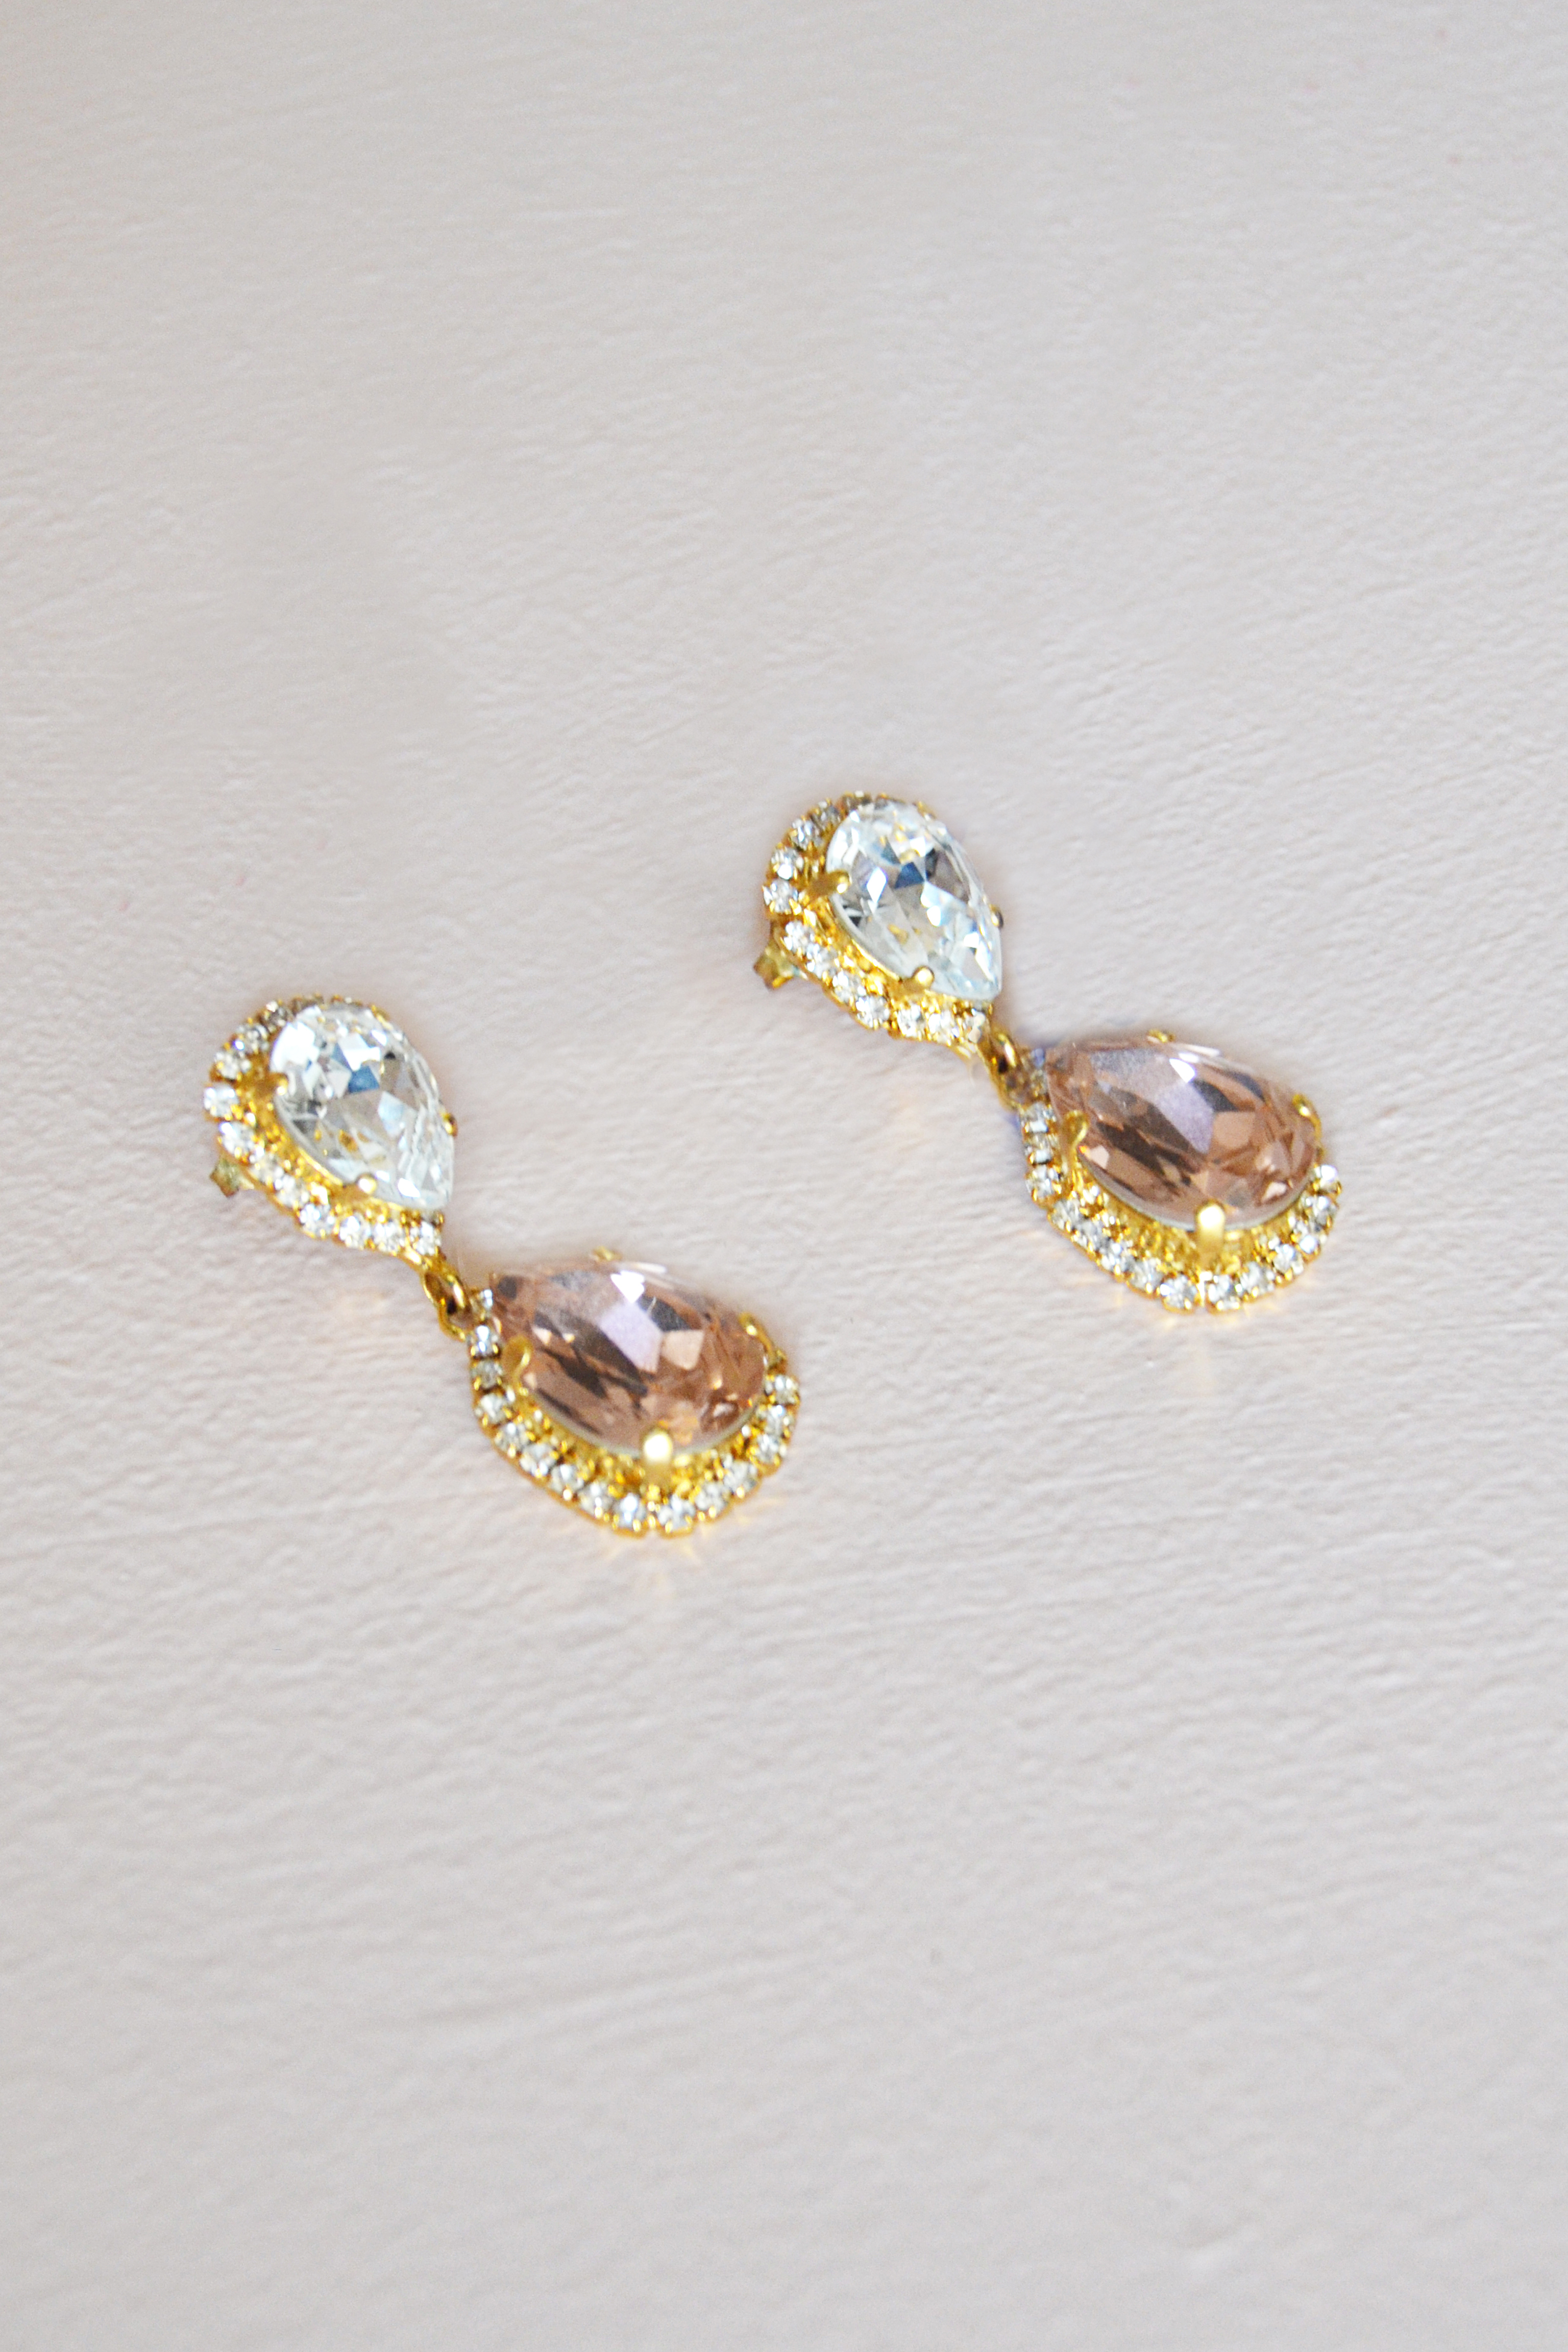 Blush Pink Chandelier Earrings Return To Previous Page Bug Fix Next